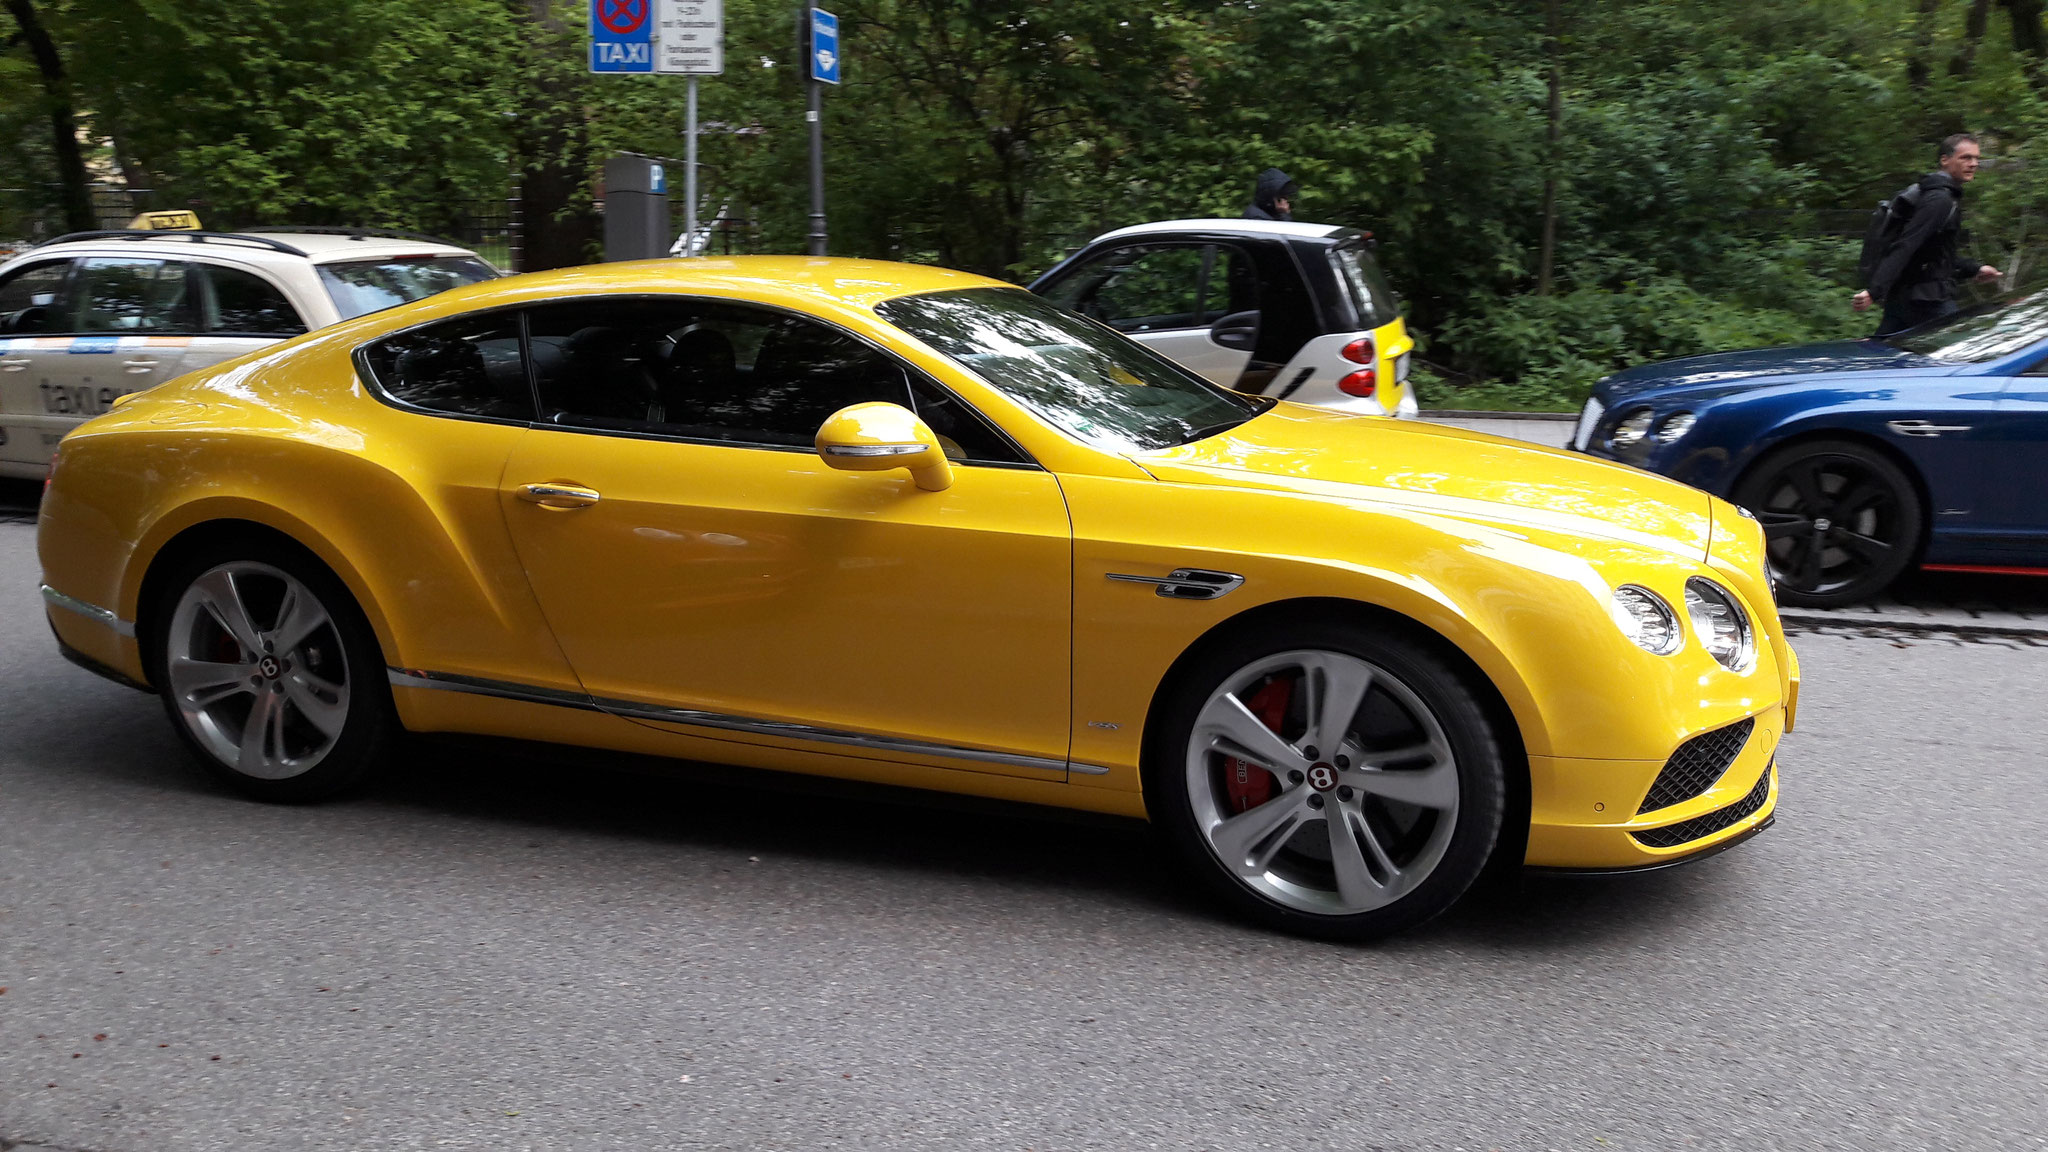 Bentley Continental GT V8 S - DF66-MYP